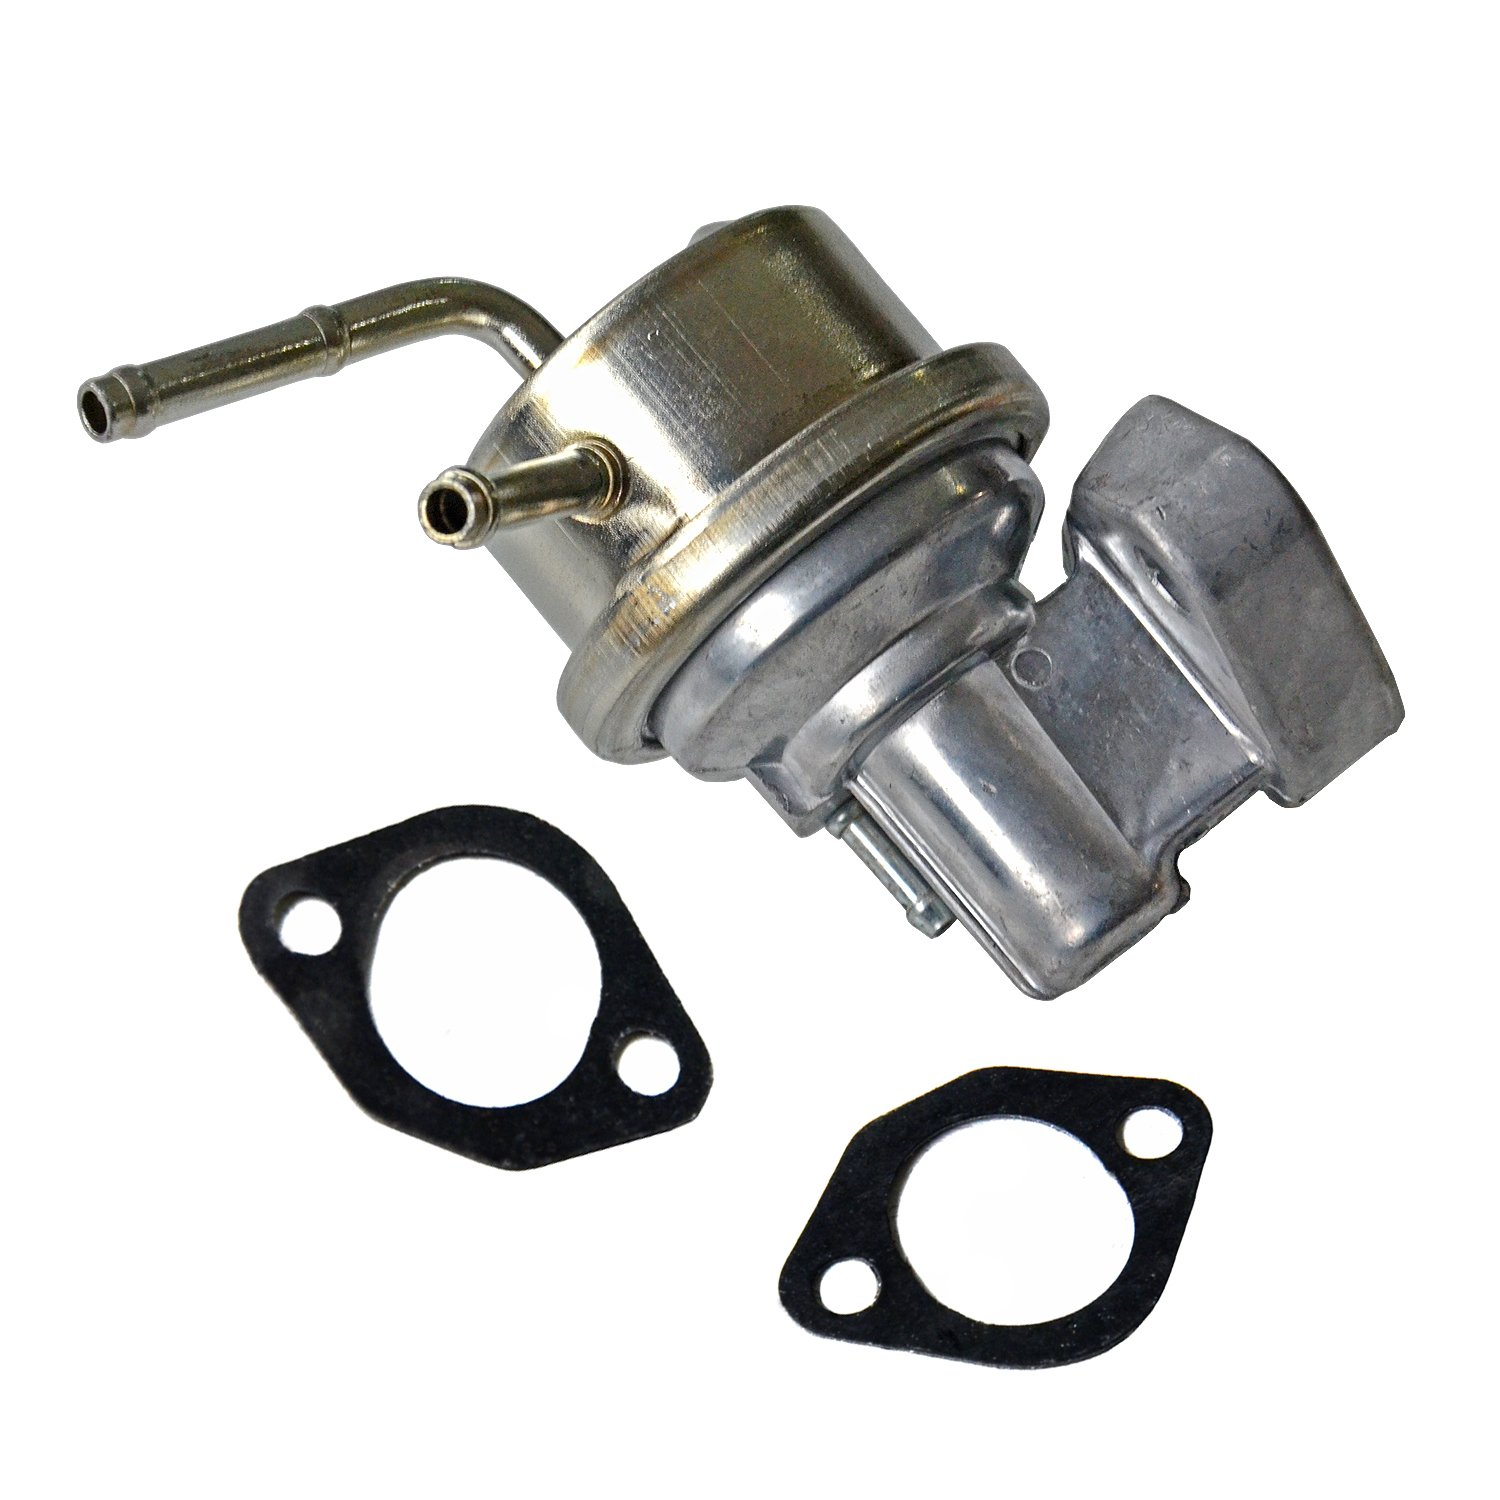 Fuel Pump Fit For John Deere Gx345 Lx178 Lx188 Lx279 Engine Diagram 99916 2164 Am132715 Automotive